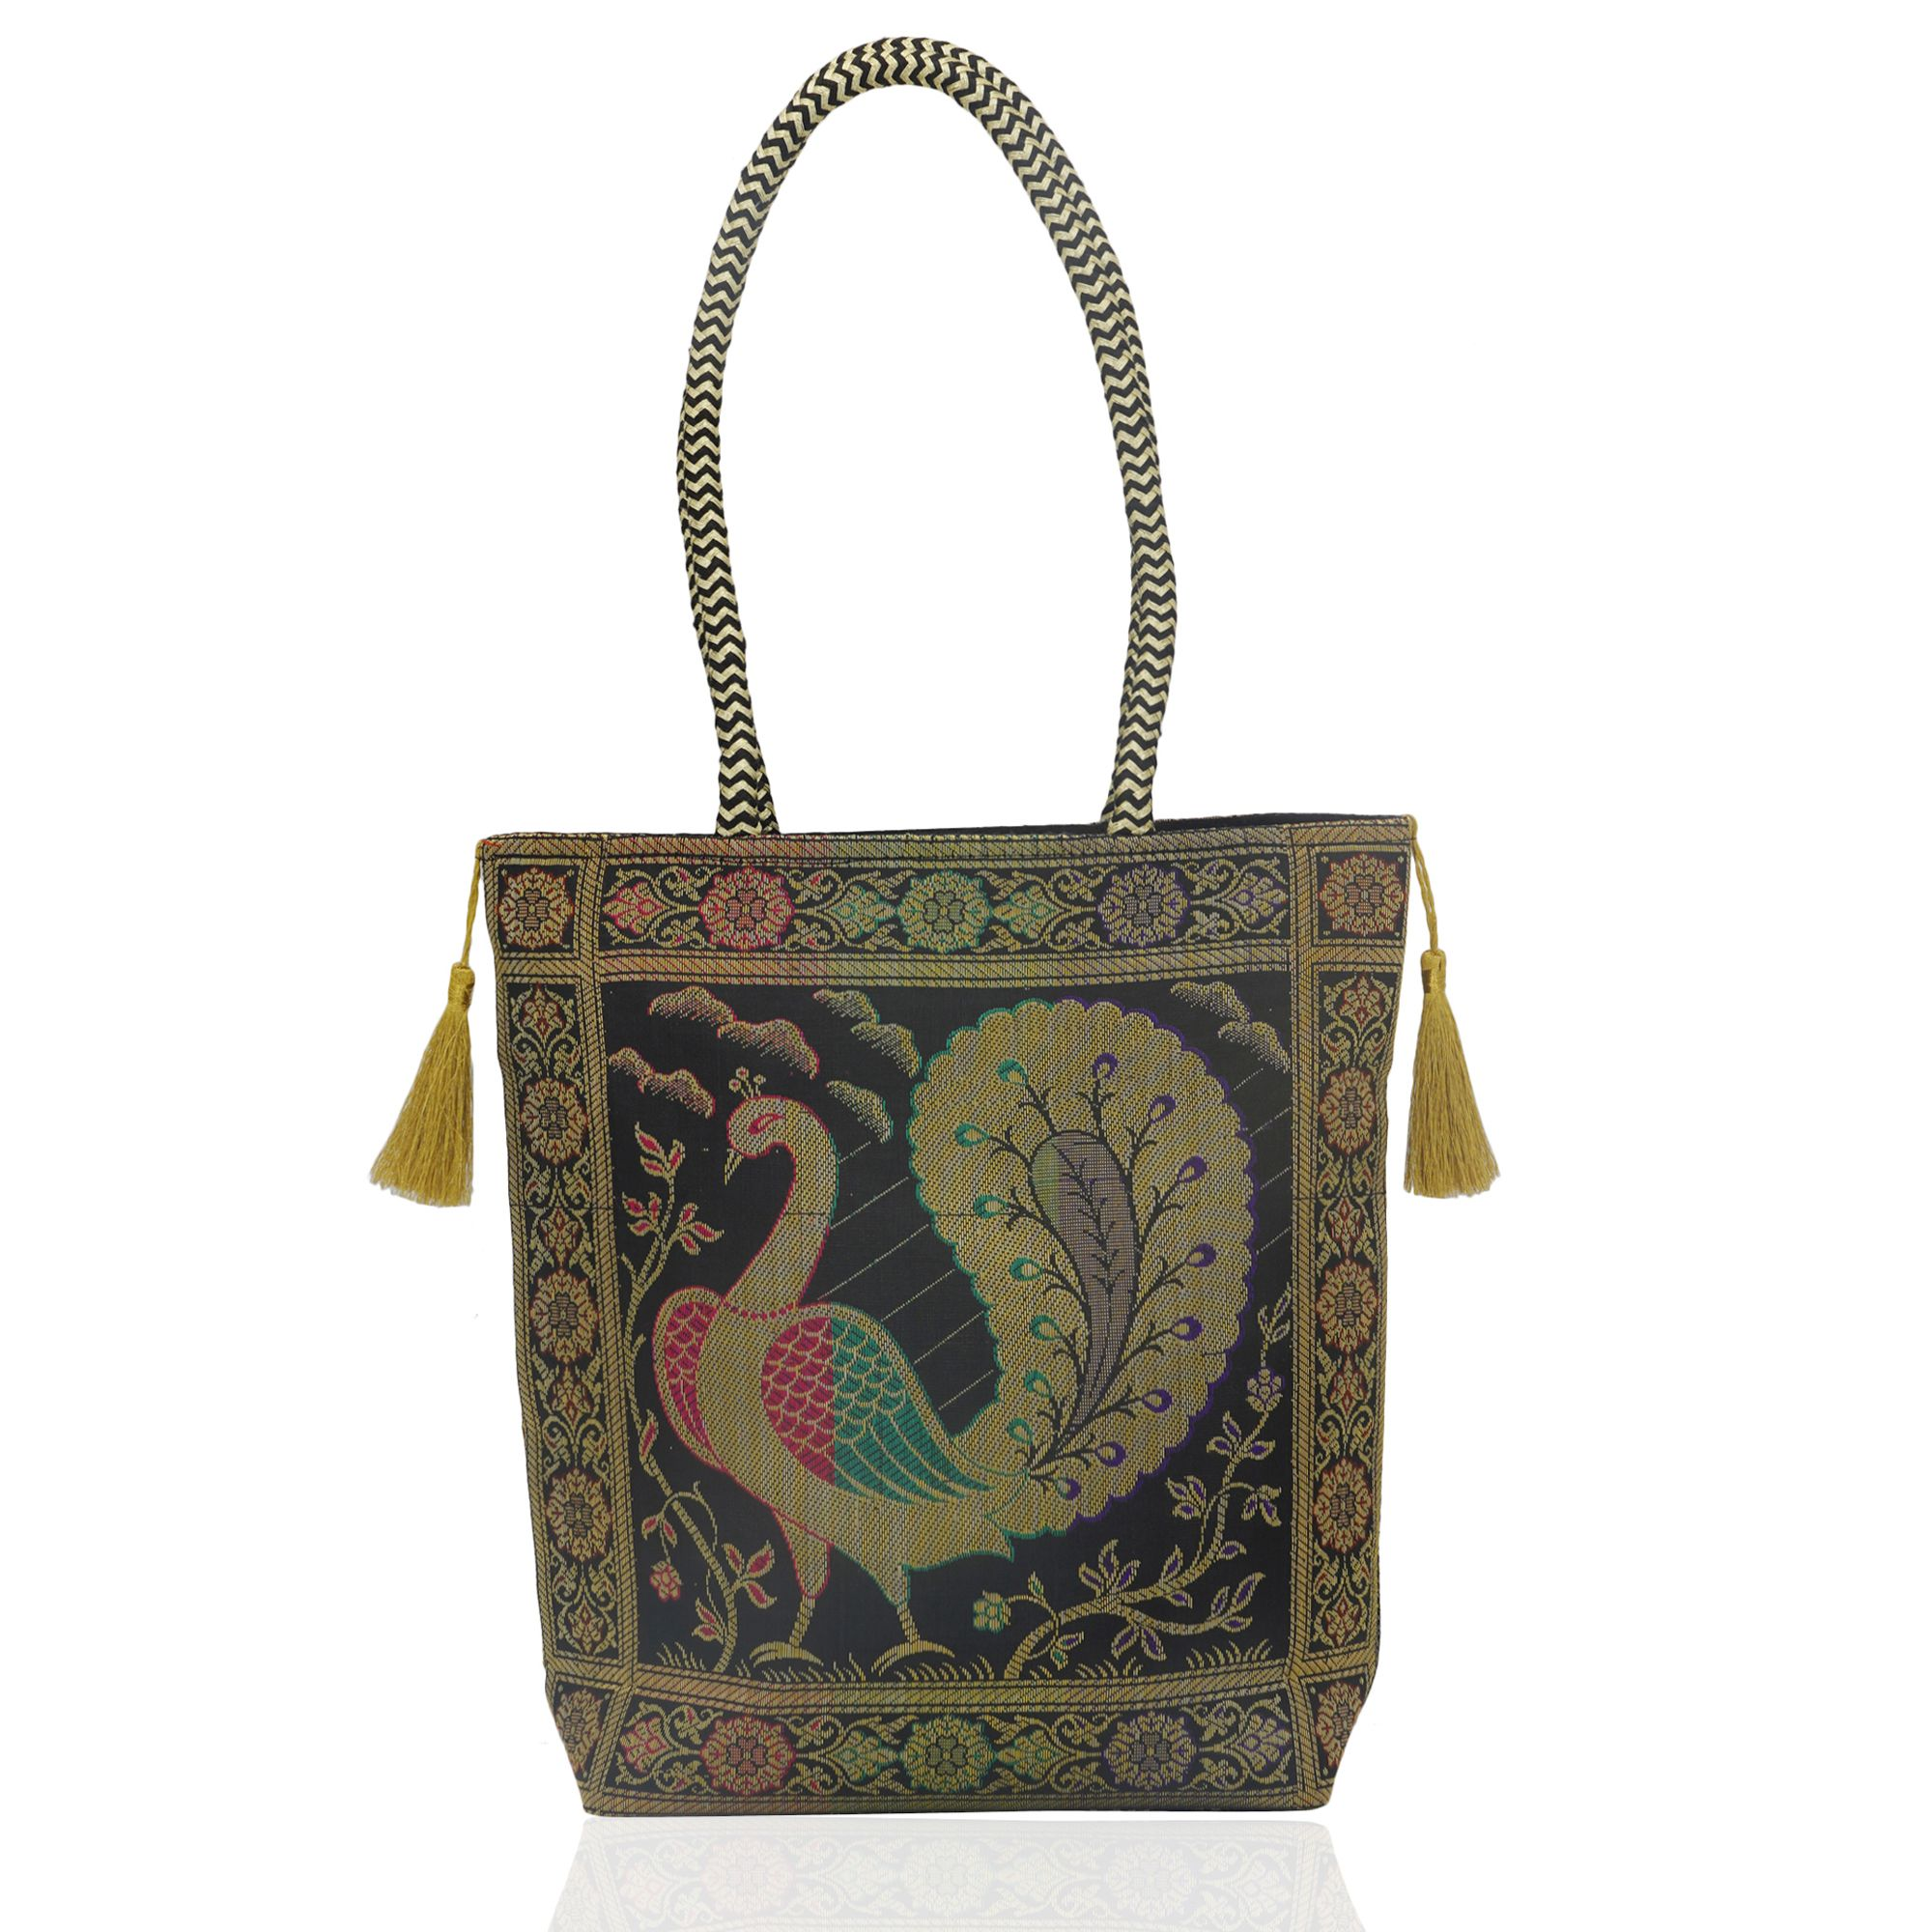 Handloom Black Banarasi Brocade bag with Golden Tassels in Peacock Motif